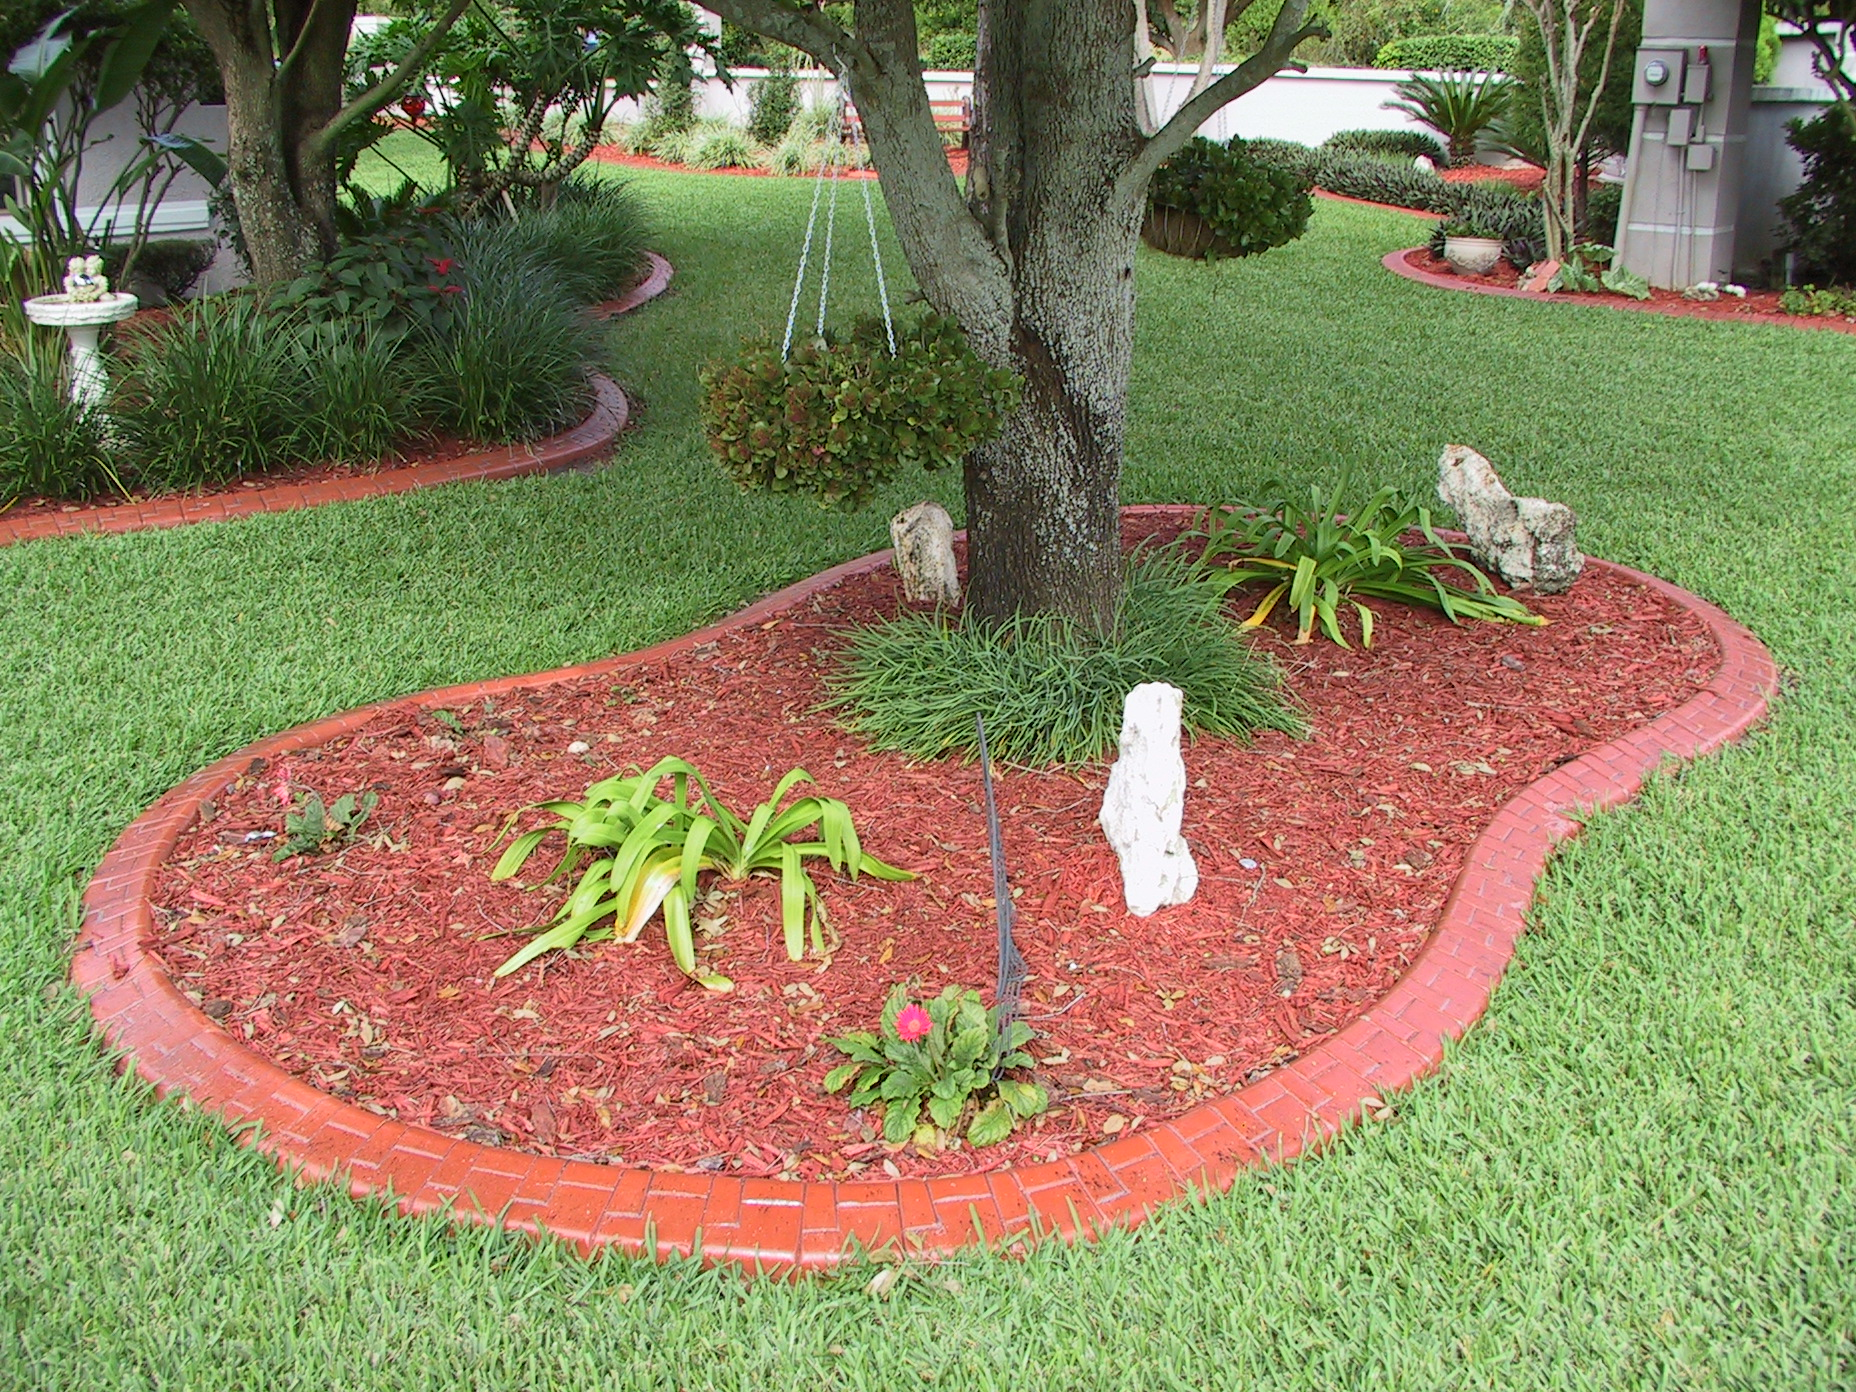 Landscaping Edger | Landscape Edging Ideas | Garden Border Stones